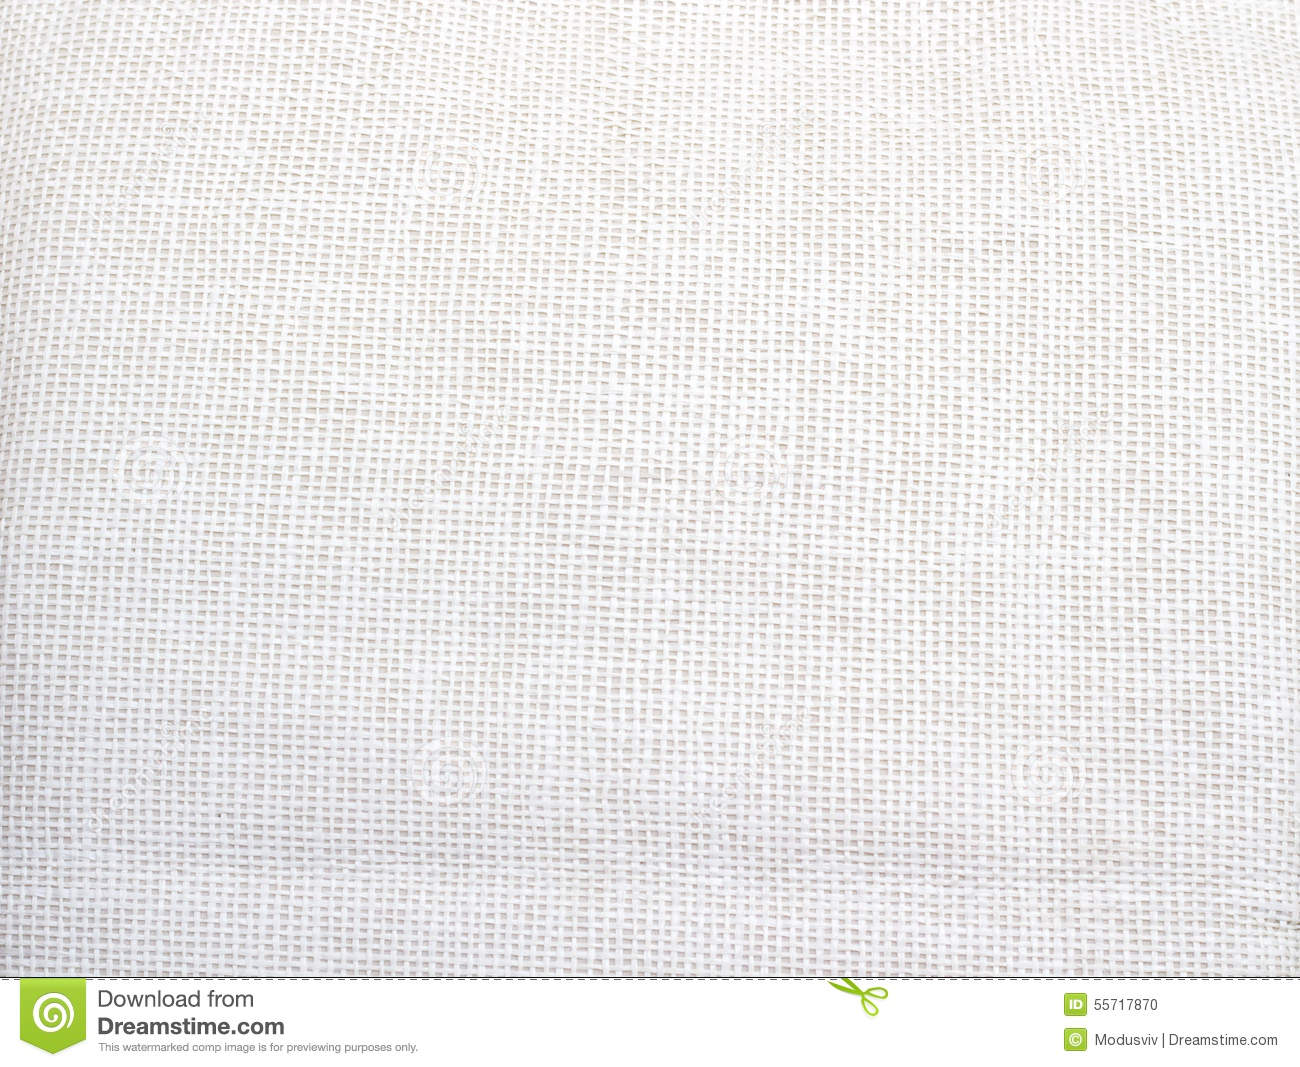 Linen Background Texture Free Stock Photos Download 9 467: Texture Of Light Linen Fabric Stock Photo